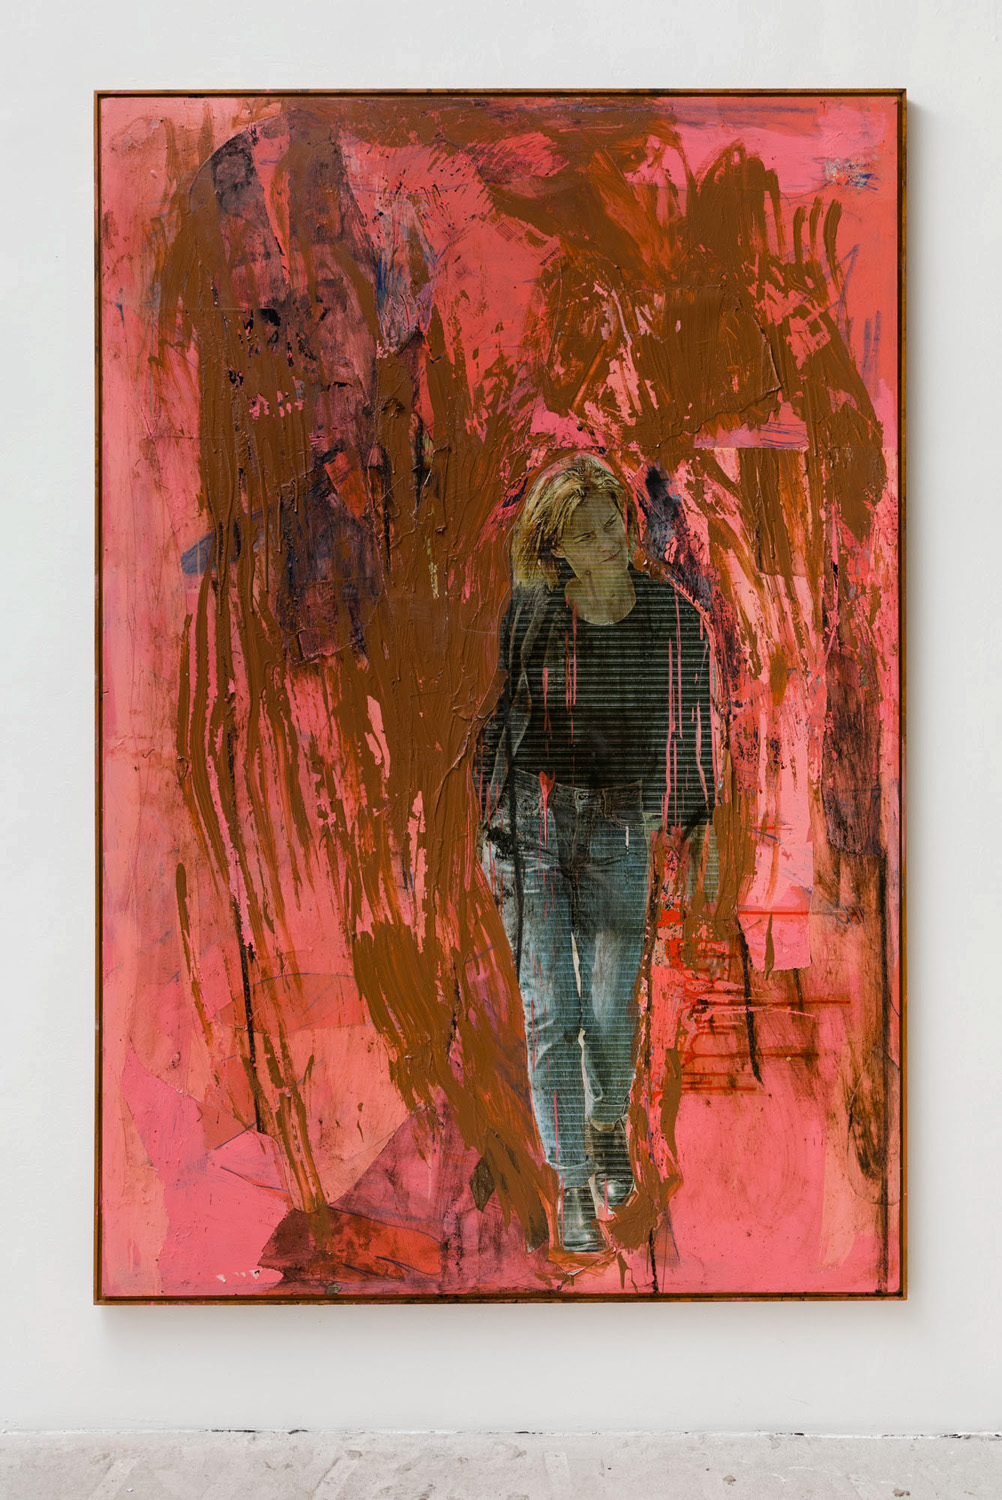 ves Scherer    Emma (Virgen de Guadalupe) , 2017  Acrylic paint, resin, photograph, dirt, varnish on perspex  62.5 x 47.25 inches